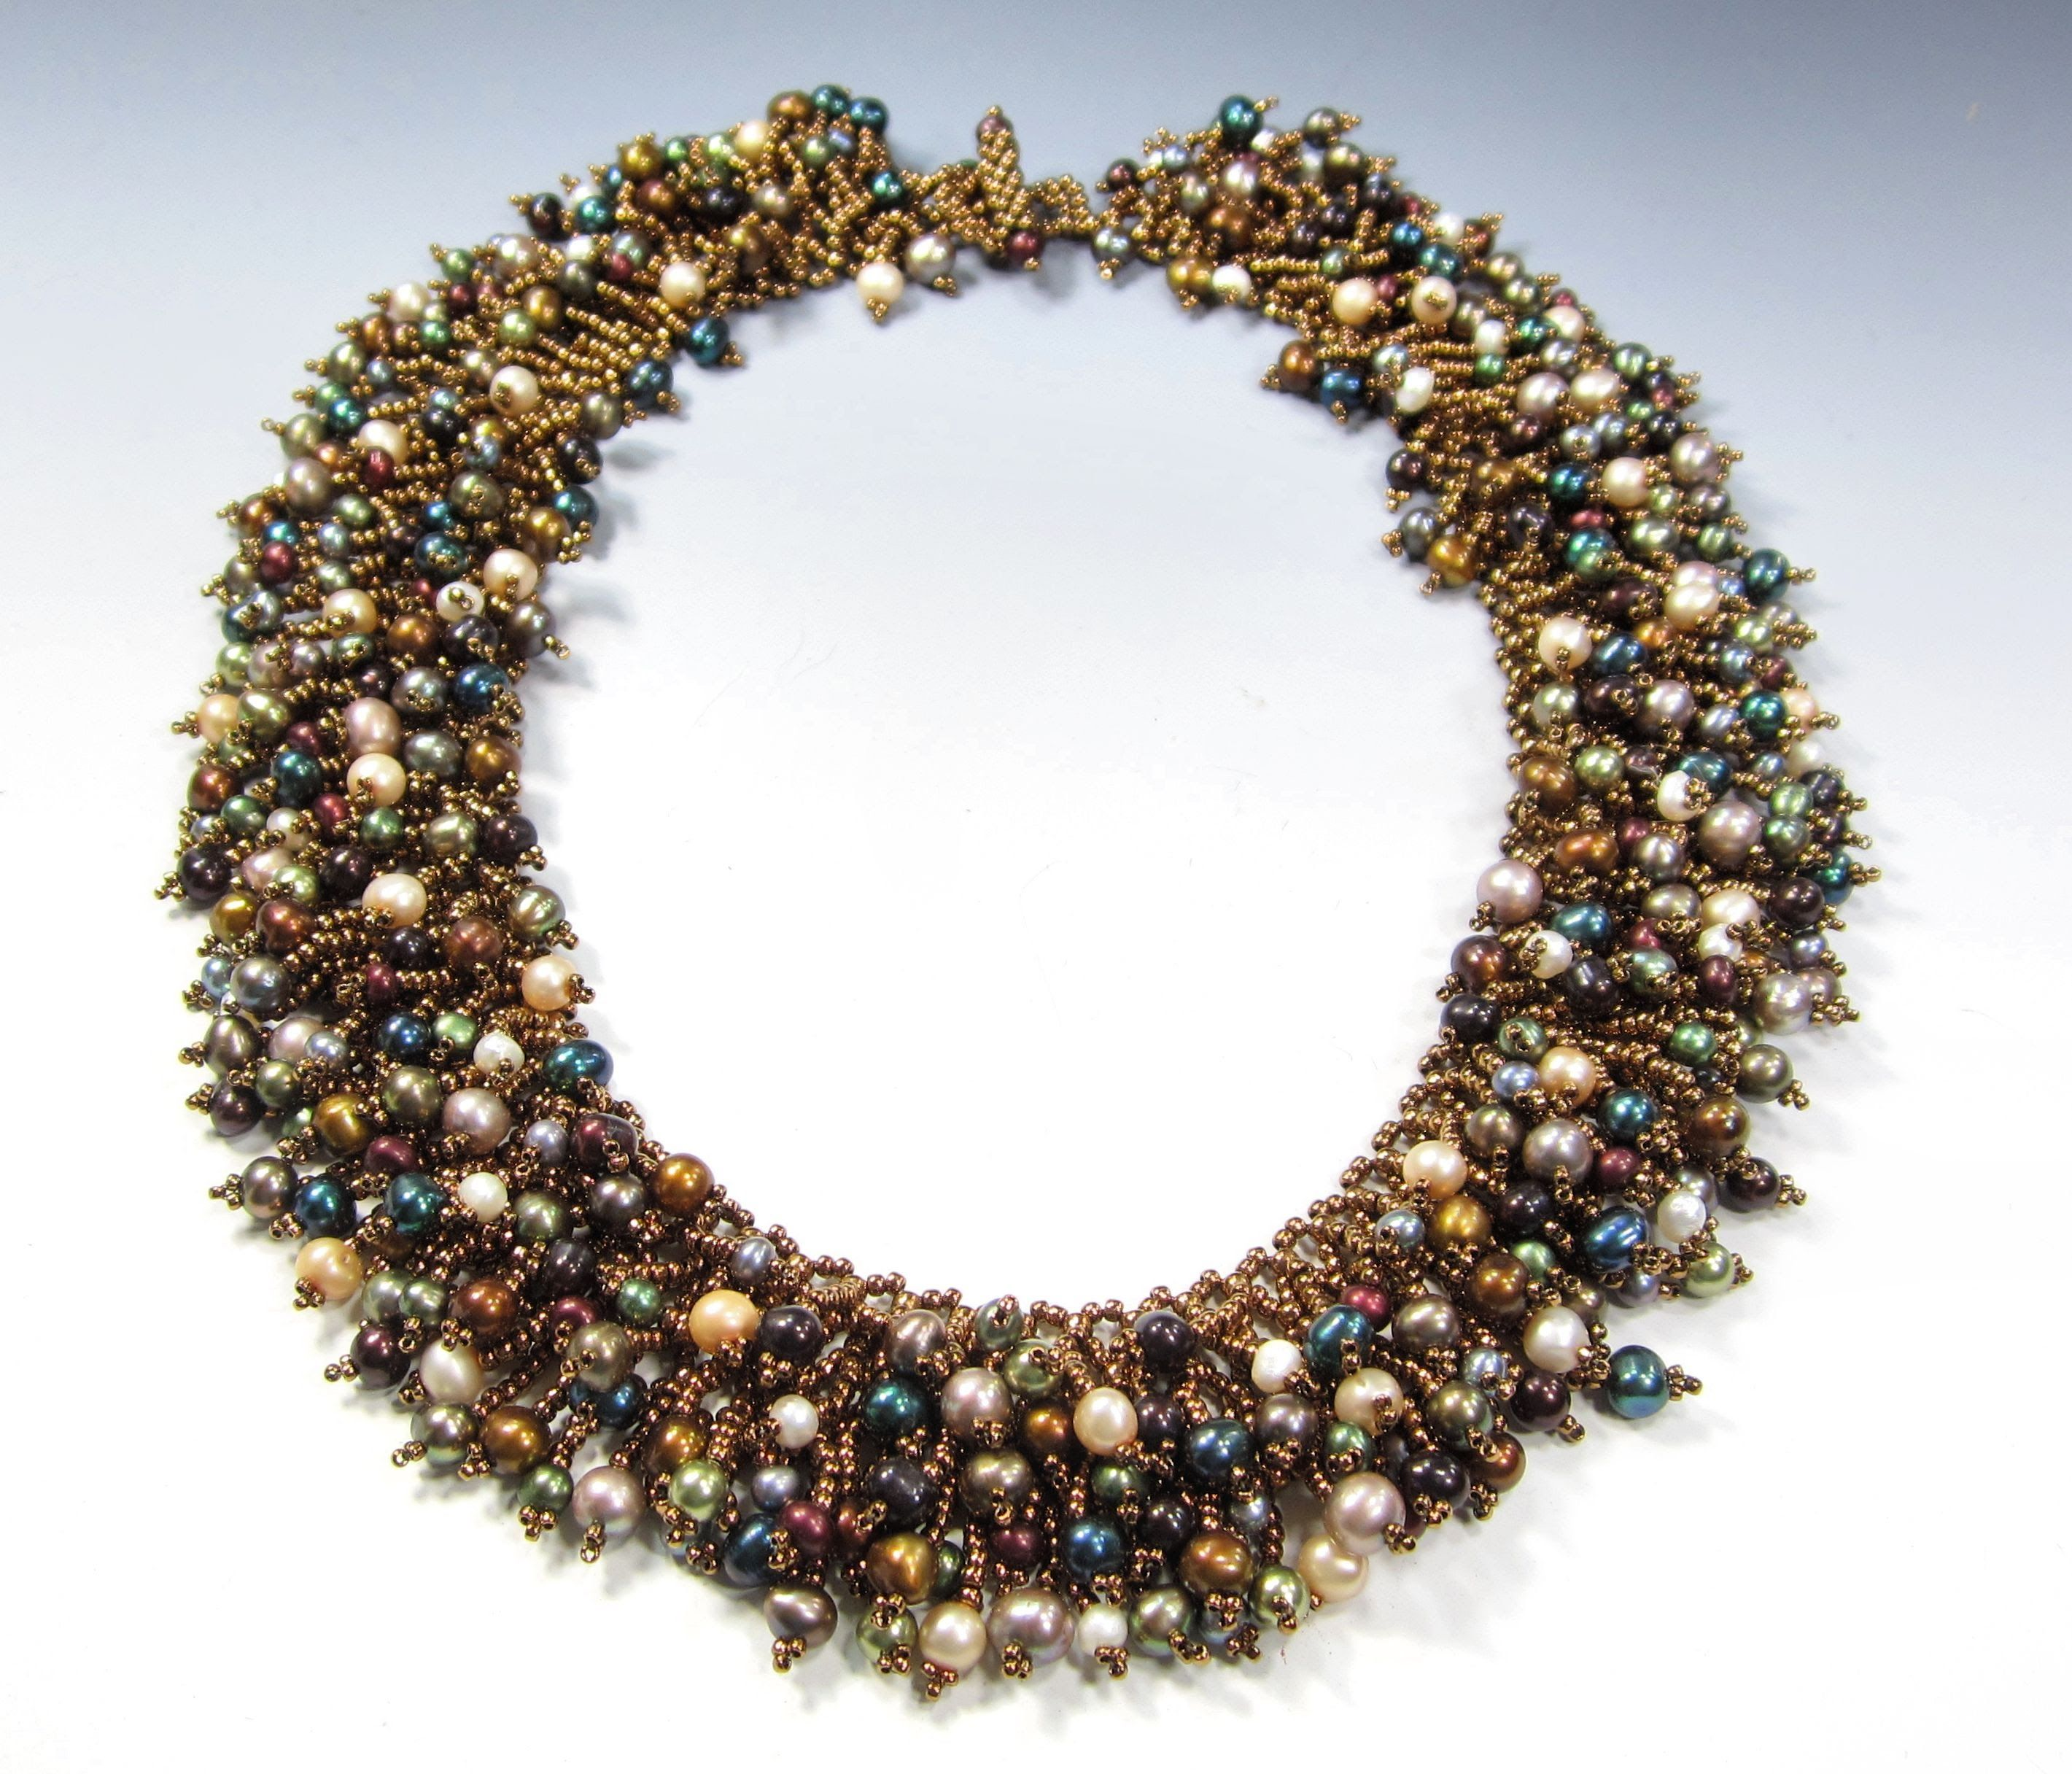 When you need some extra glam, this is the project! A netted base that is then embellished with pearls in multiple colors and sizes. You won't go unnoticed! ...